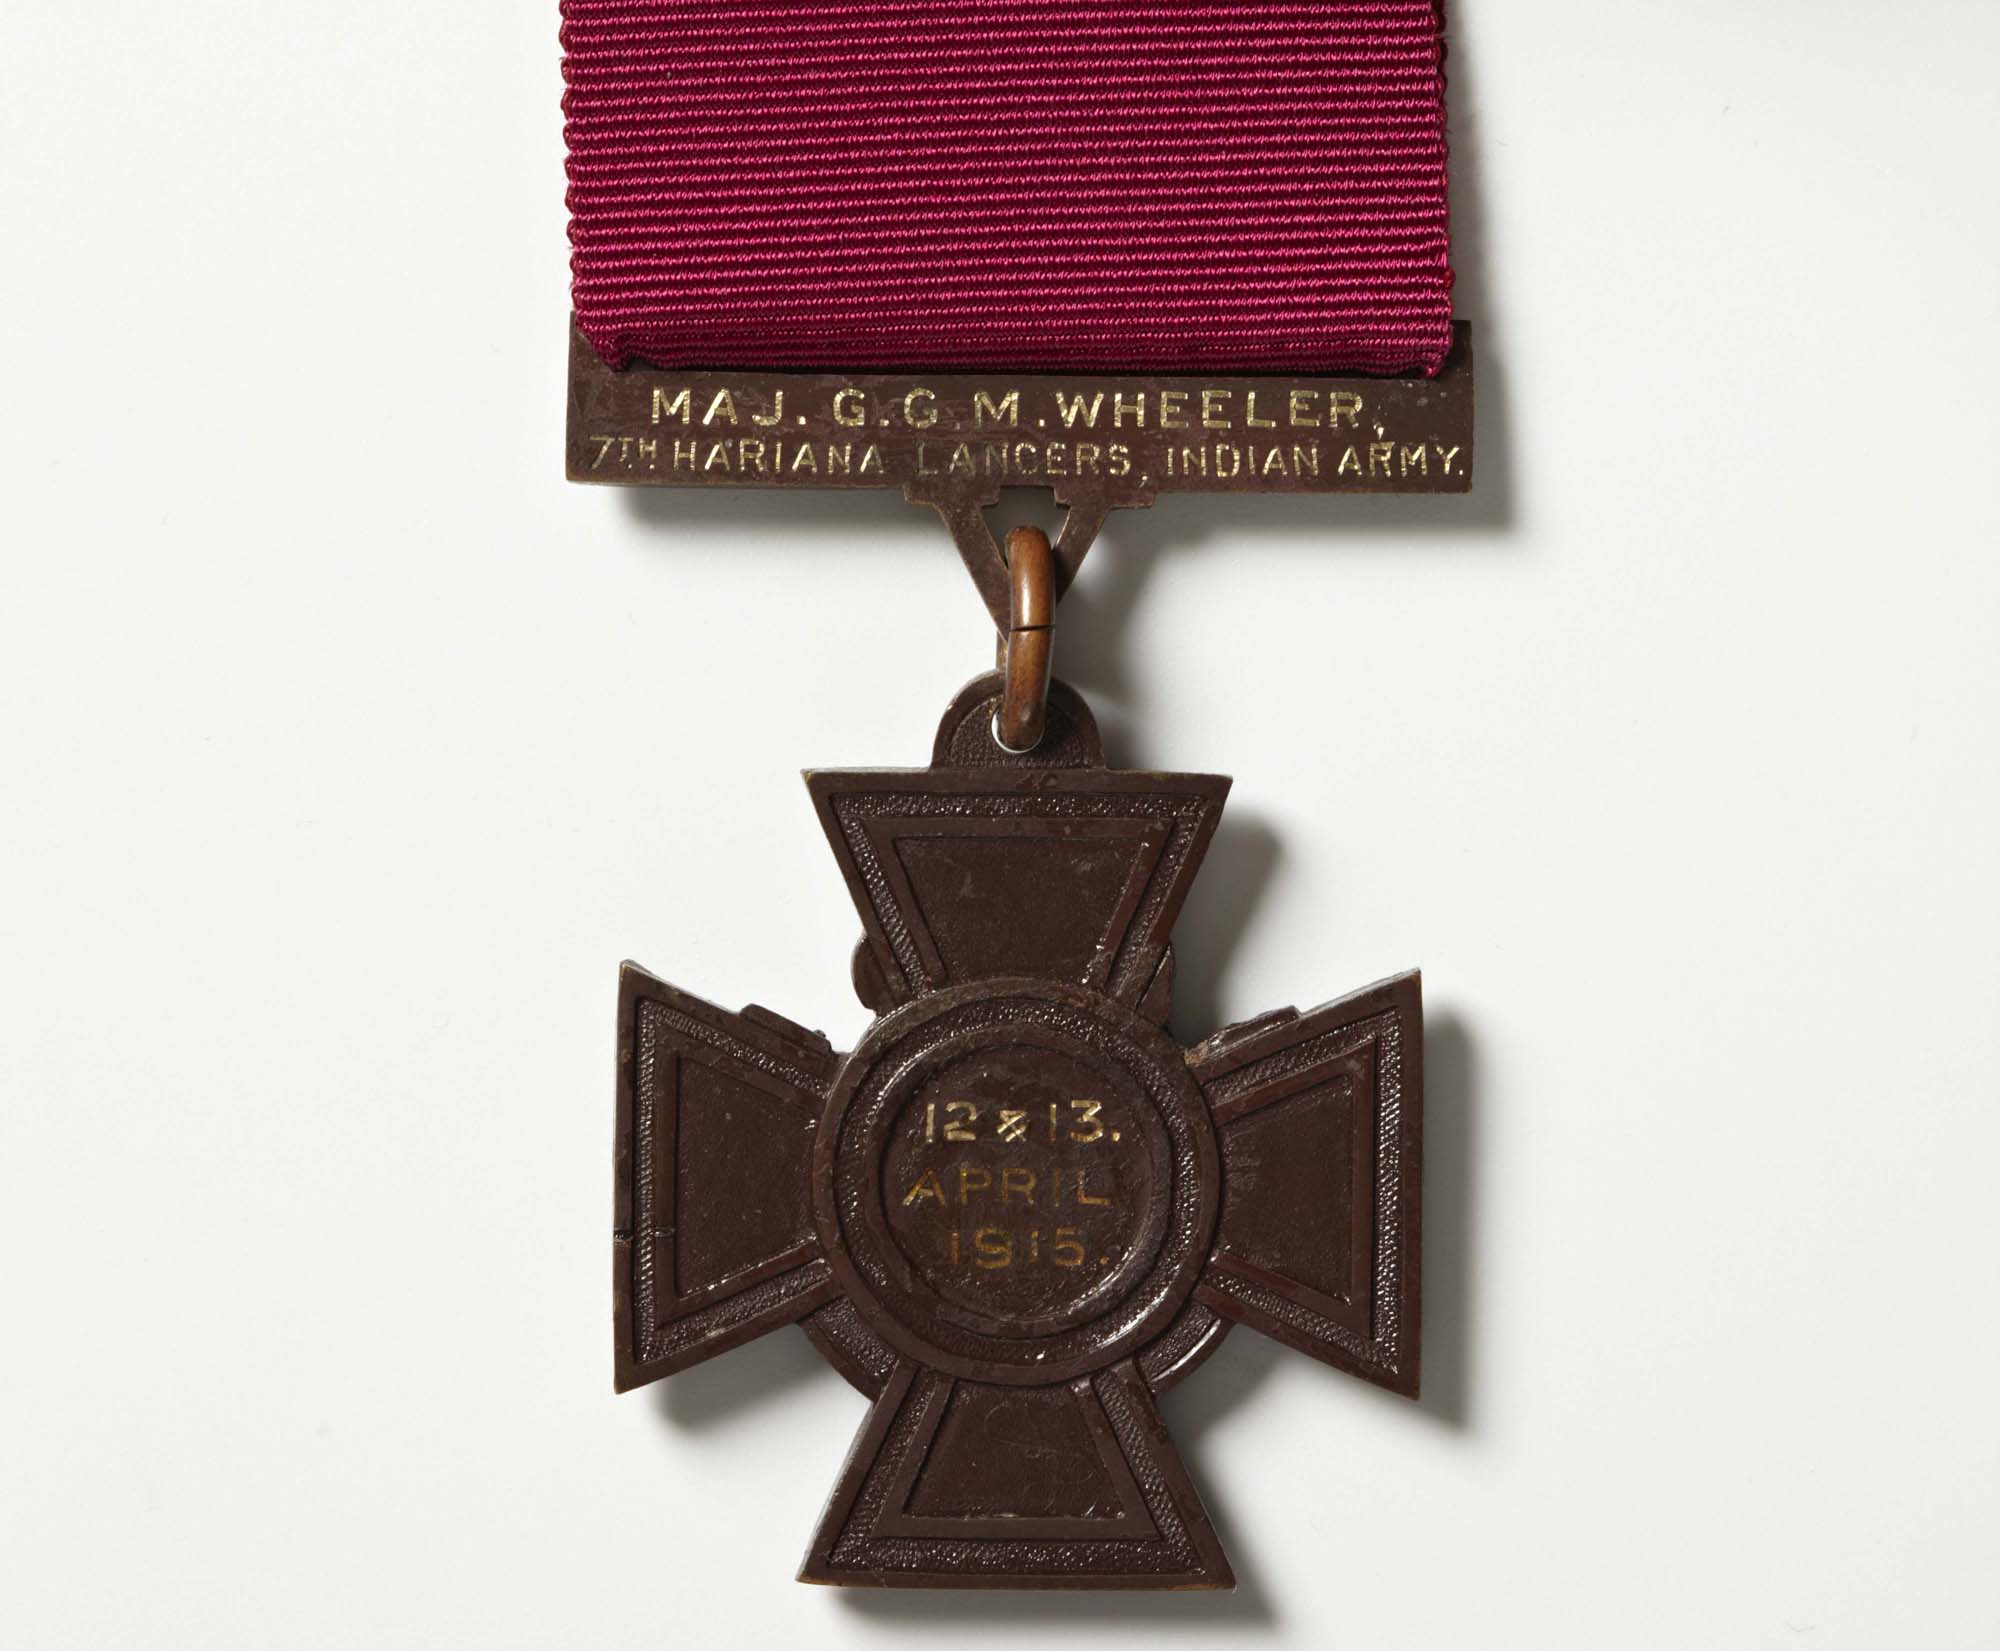 a photo of a bronze cross with a dark purple medal ribbon and the date 12 & 13 April 1915.